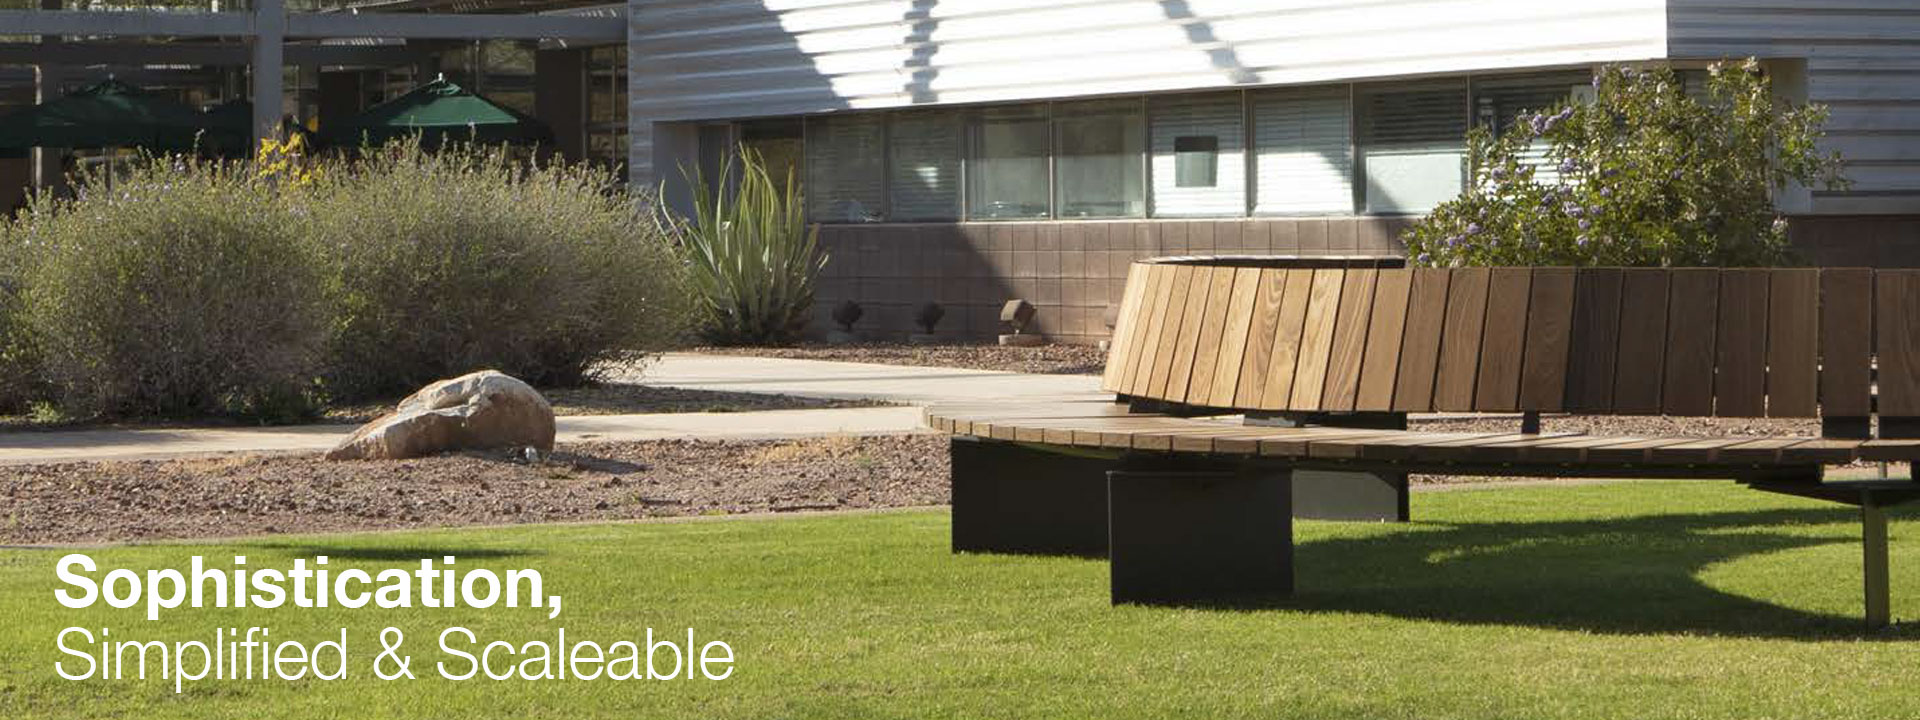 Introducing Link, an innovative and highly flexible outdoor seating system.